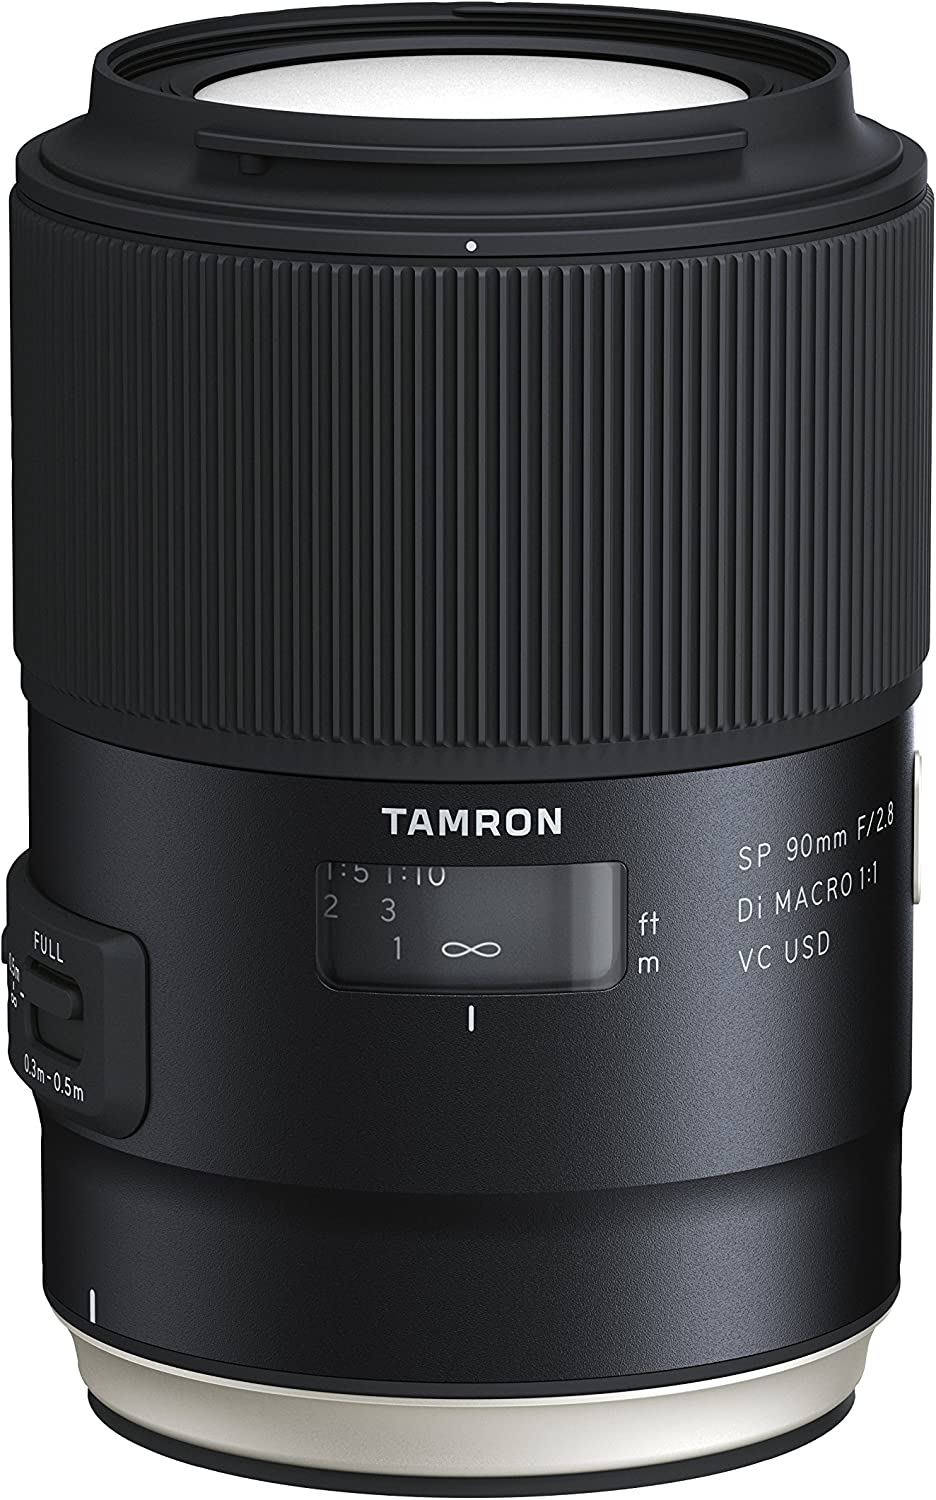 Tamron SP AF 90mm F/2.8 Di USD Macro 1:1: Amazon.es: Electrónica